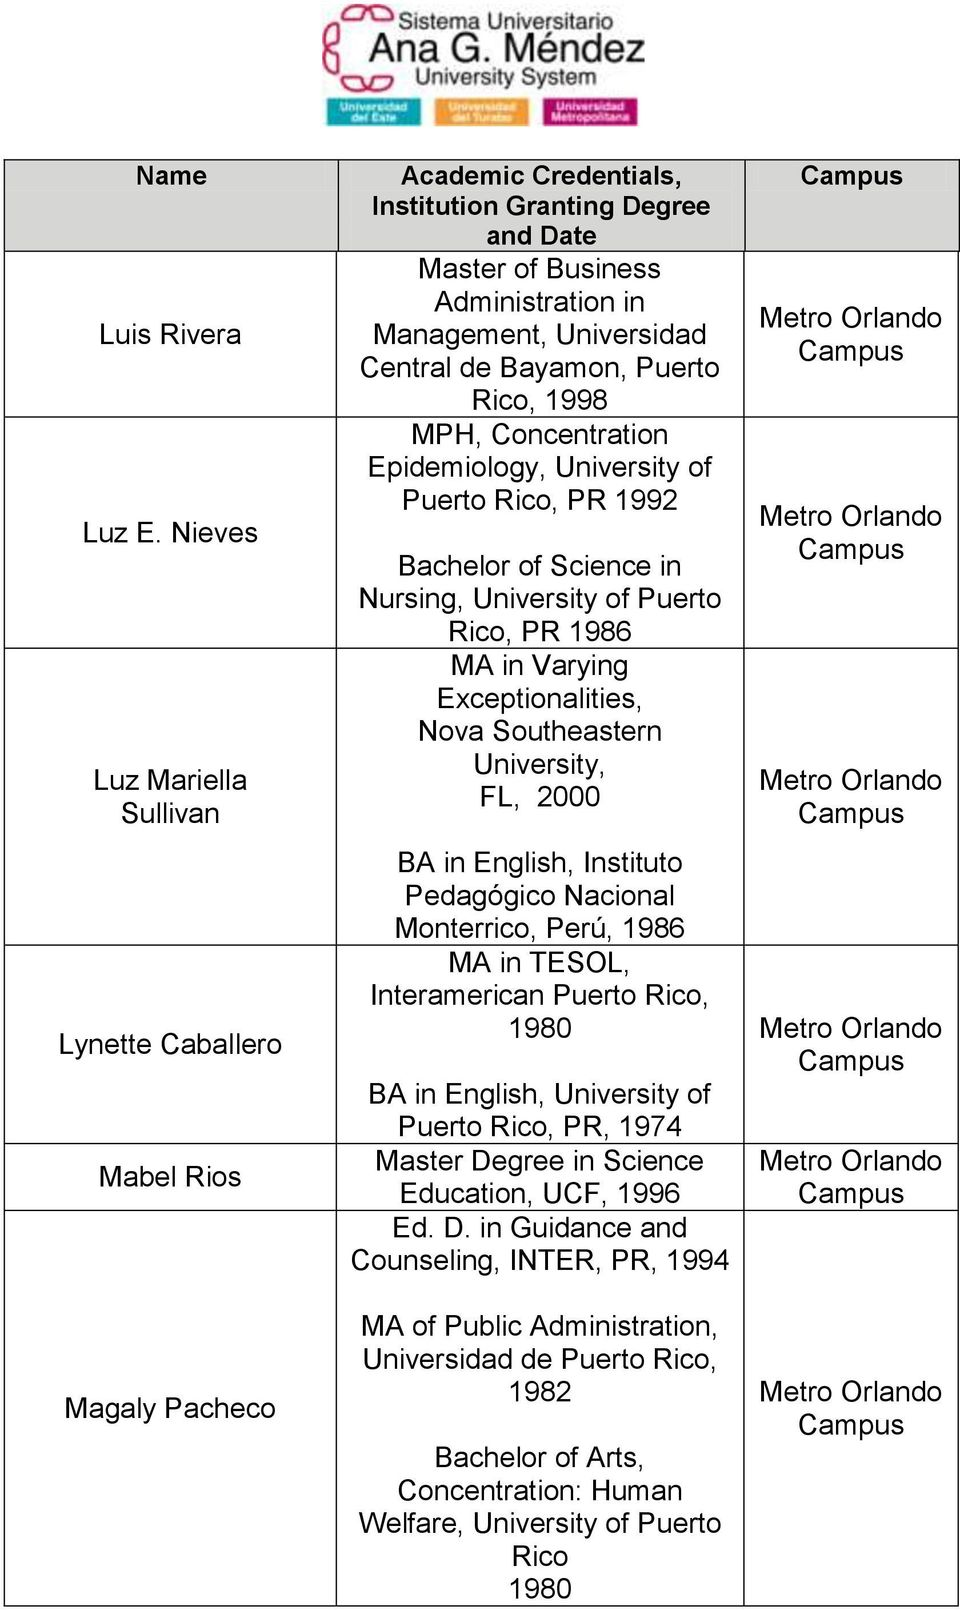 Epidemiology, University of Puerto Rico, PR 1992 Bachelor of Science in Nursing, University of Puerto Rico, PR 1986 MA in Varying Exceptionalities, Nova Southeastern University, FL, 2000 BA in